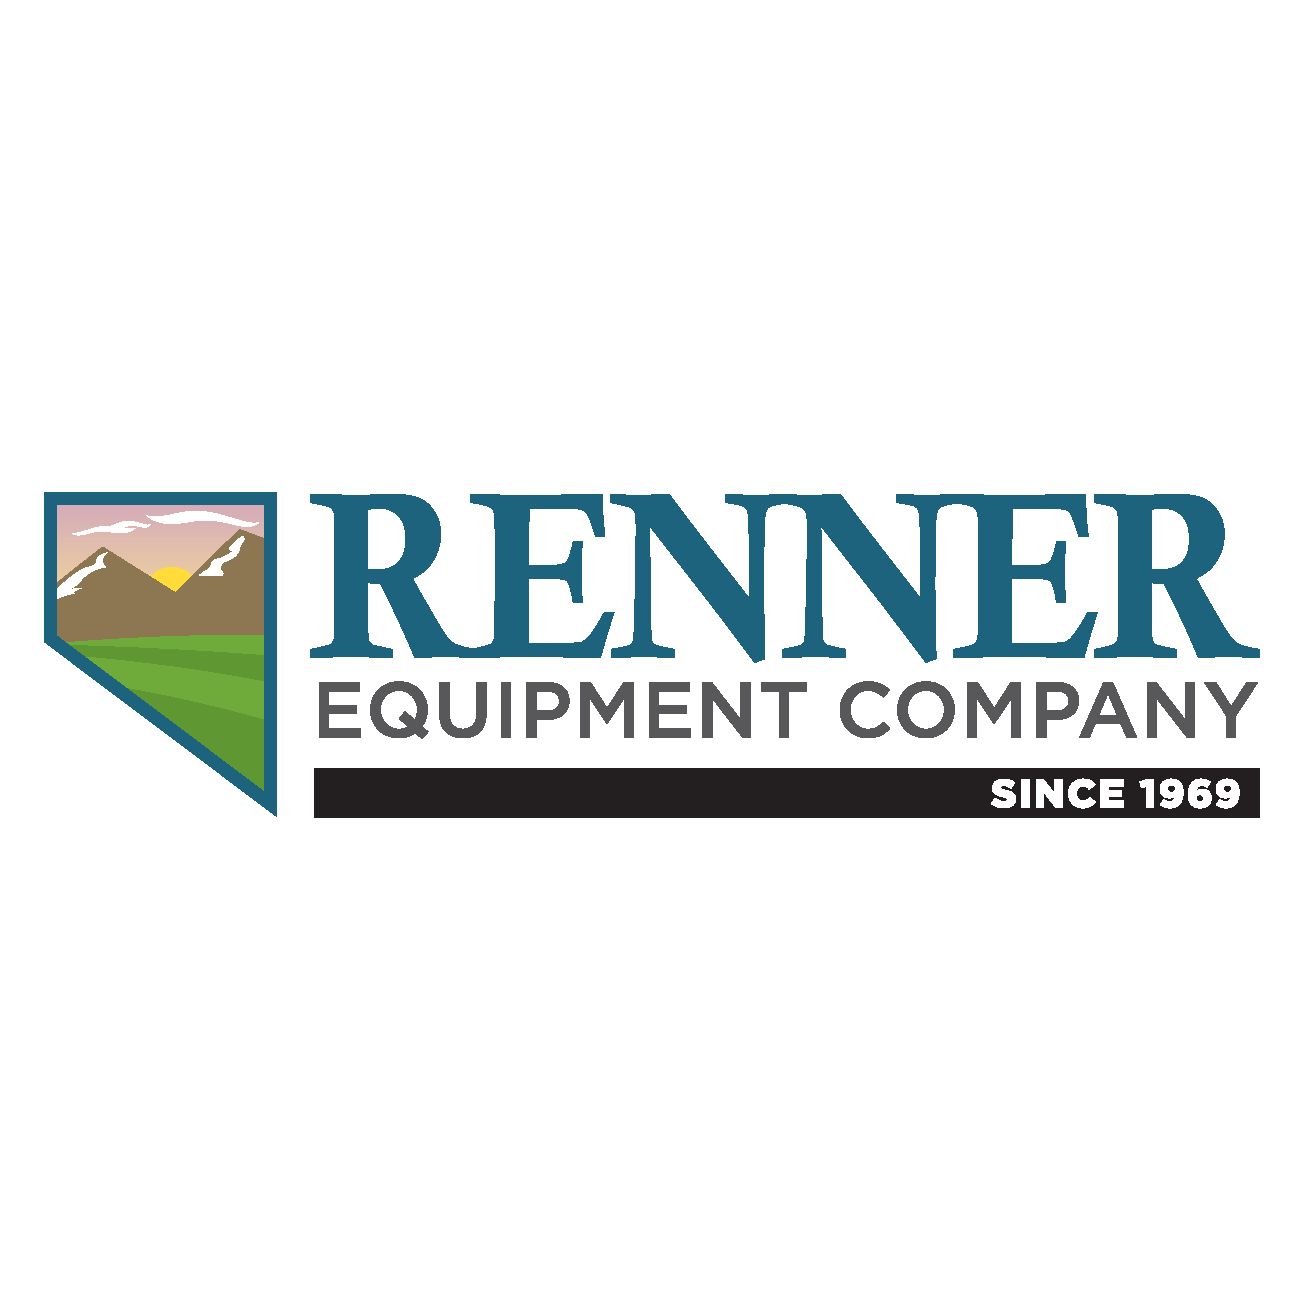 Renner Equipment Company